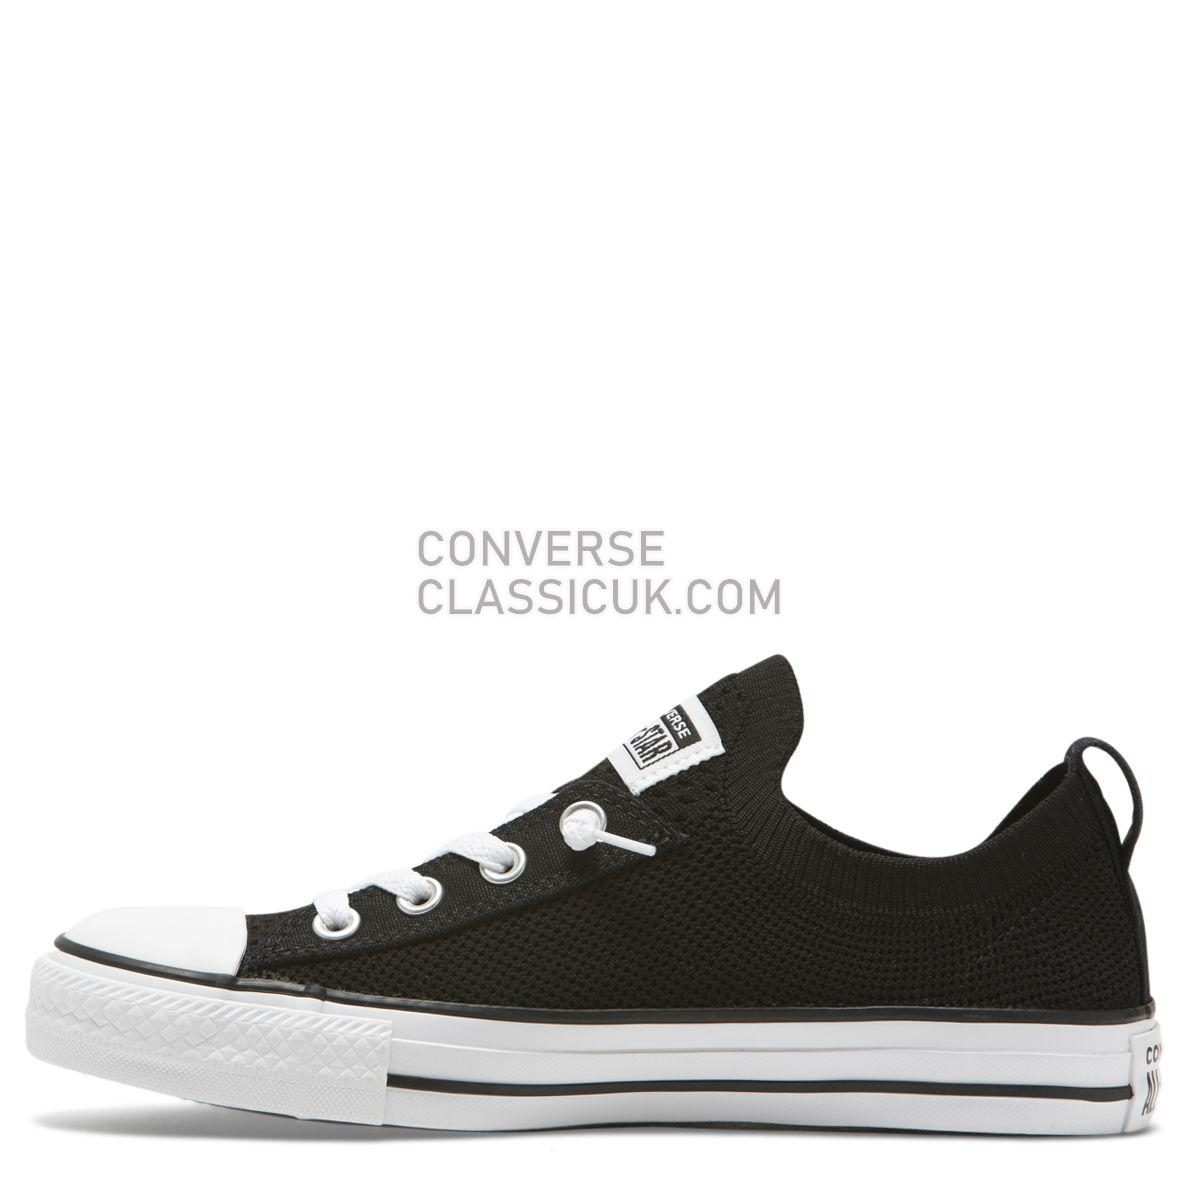 Converse Chuck Taylor All Star Shoreline Knit Slip Low Top Black Womens 565489 Black/White/Black Shoes